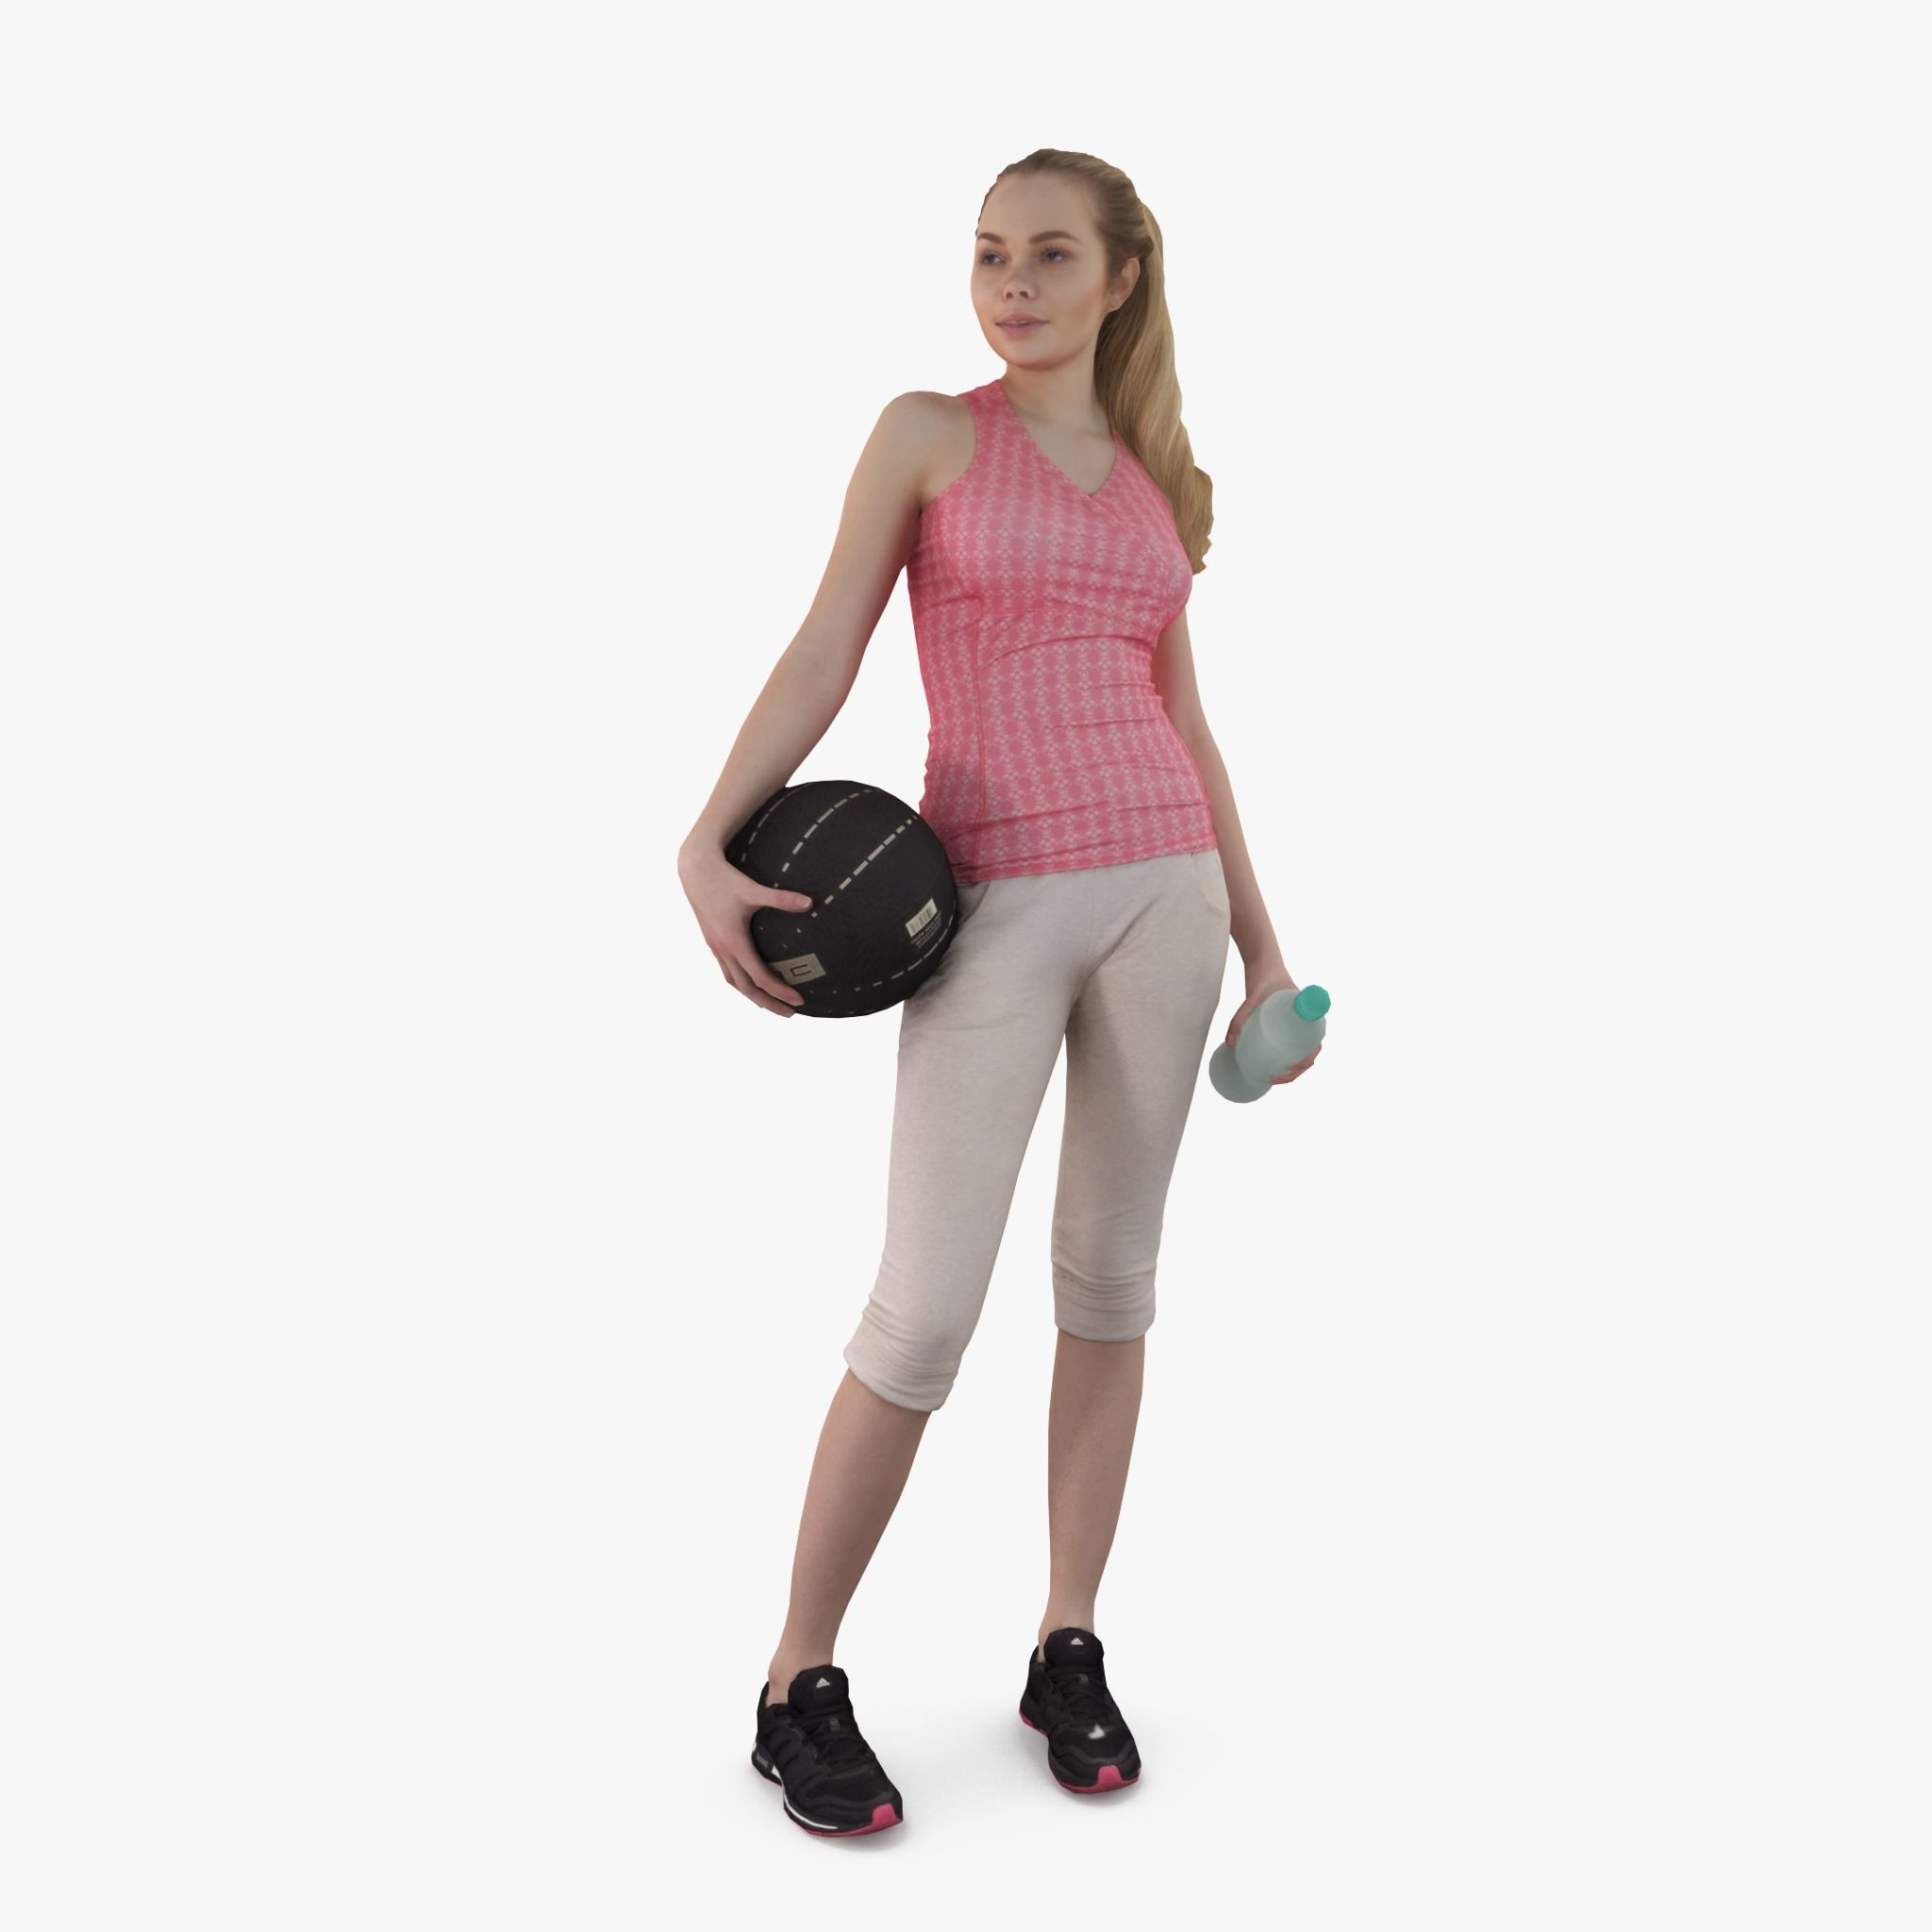 Sport Woman with Ball 3D Model FREE Download | 3DTree Studio